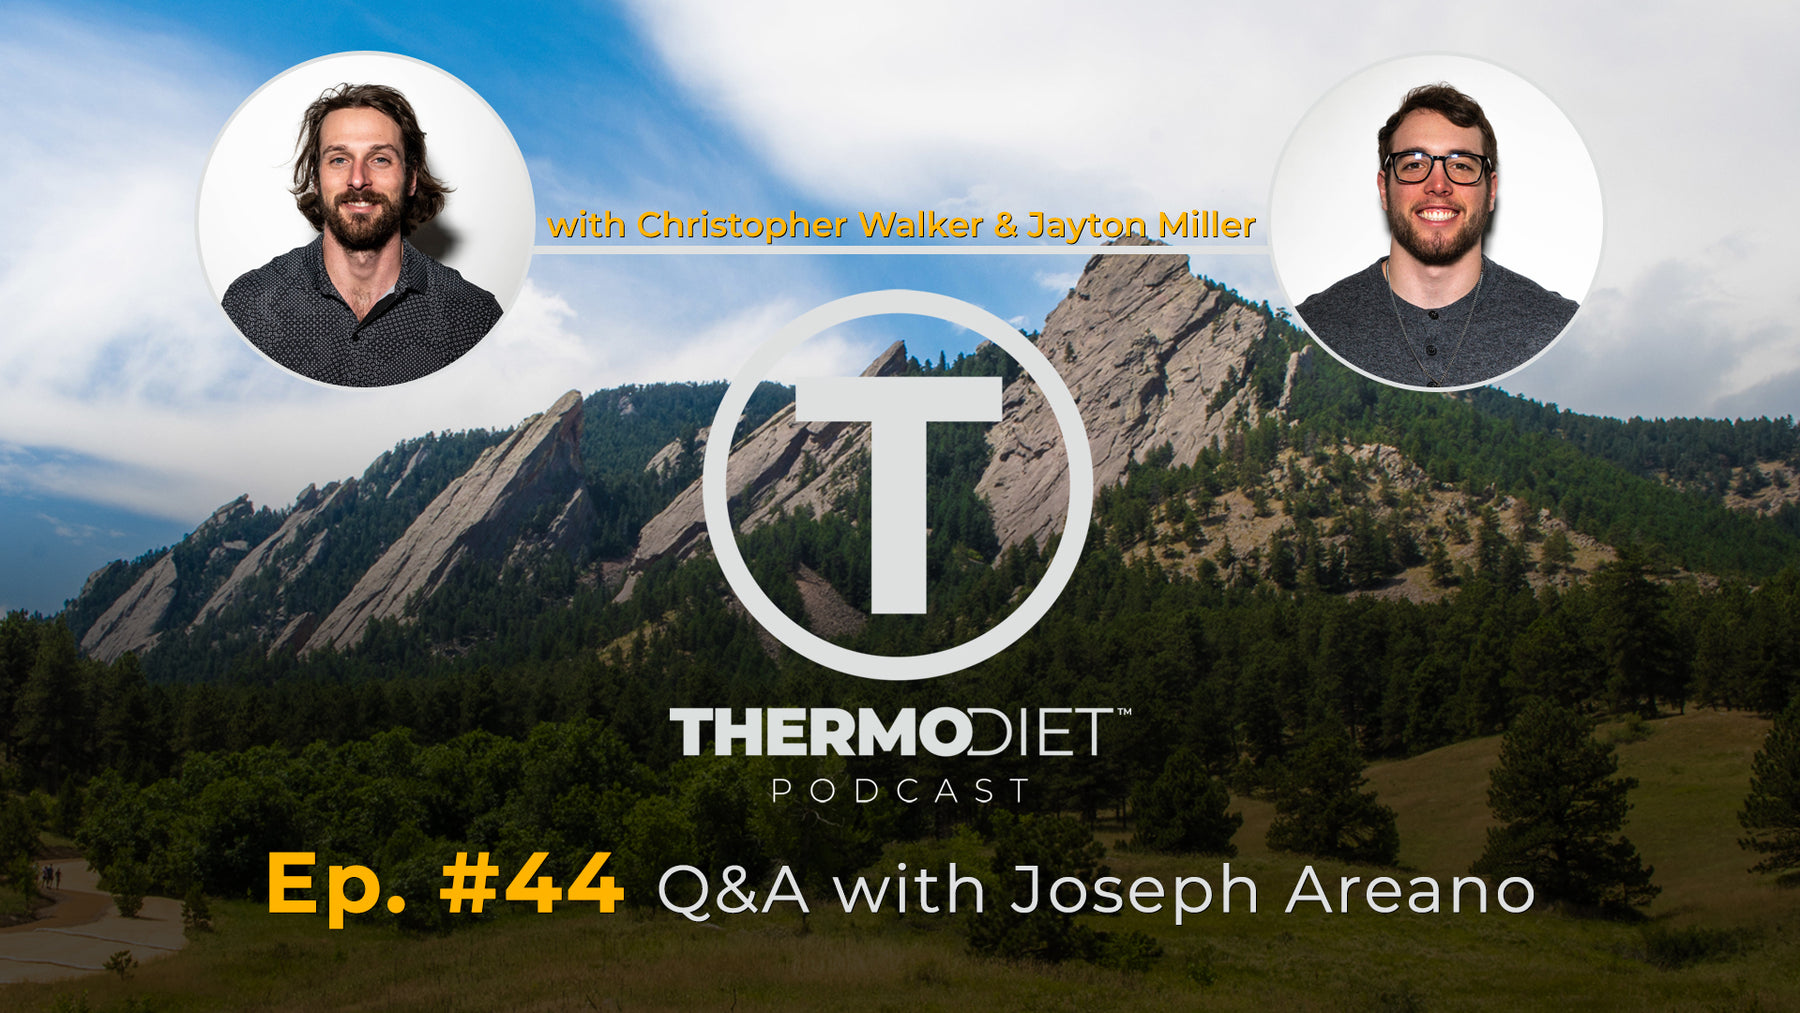 The Thermo Diet Podcast Episode 44 - Joseph Areano